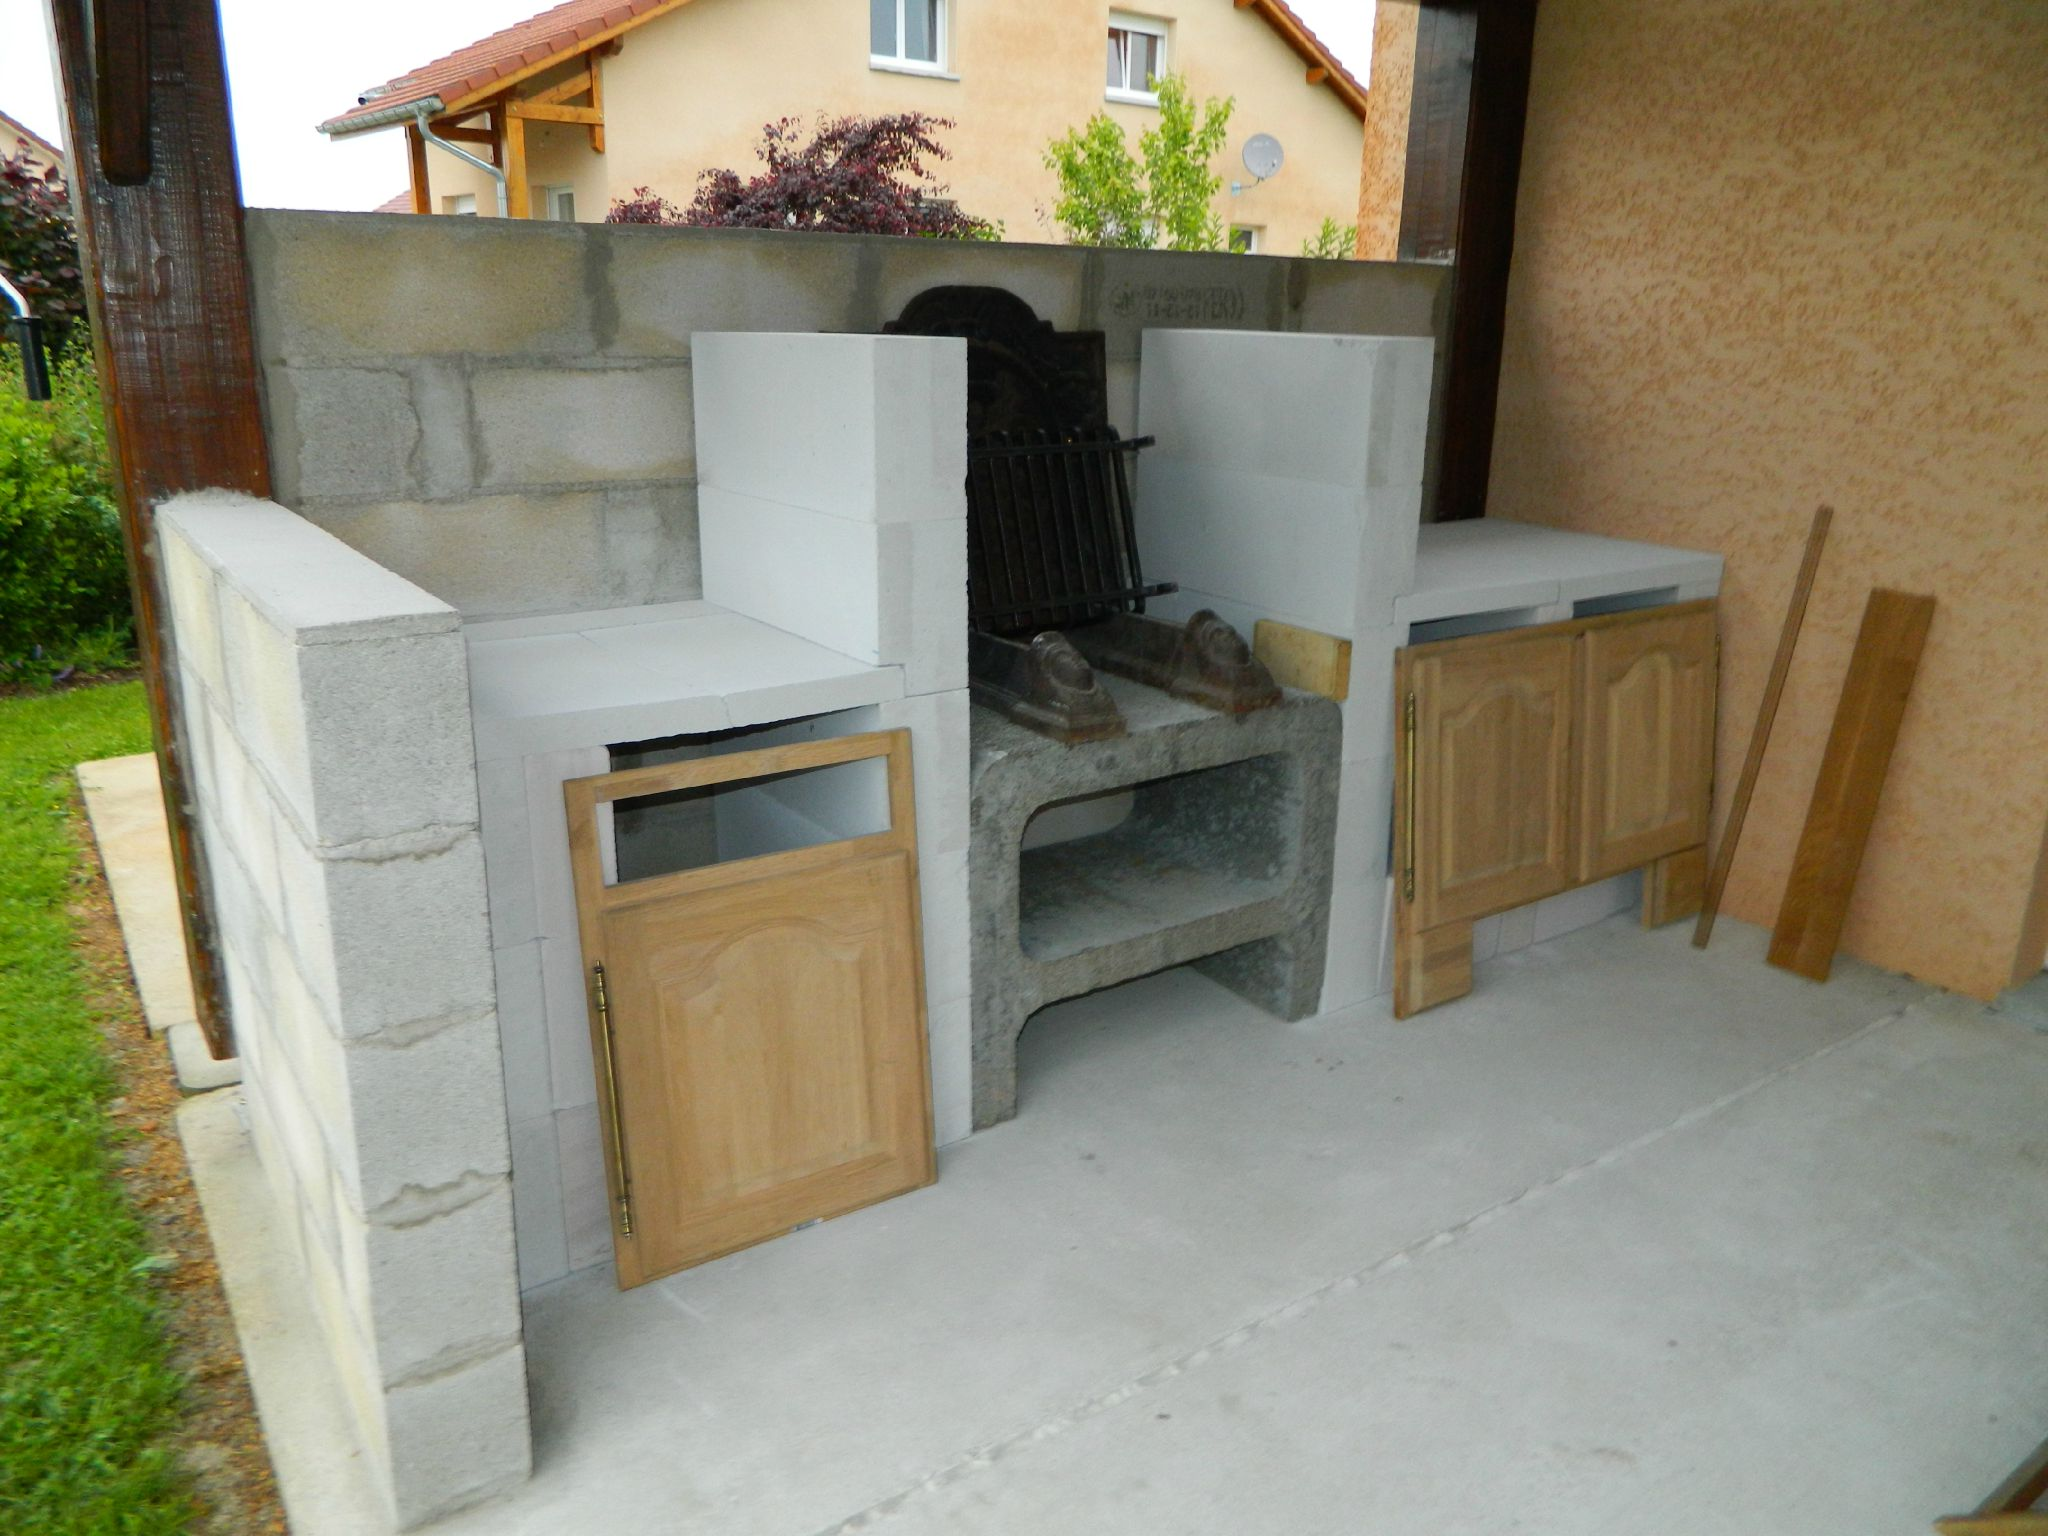 Les compartiments en siporex el matos constructions et for Plan barbecue en beton cellulaire